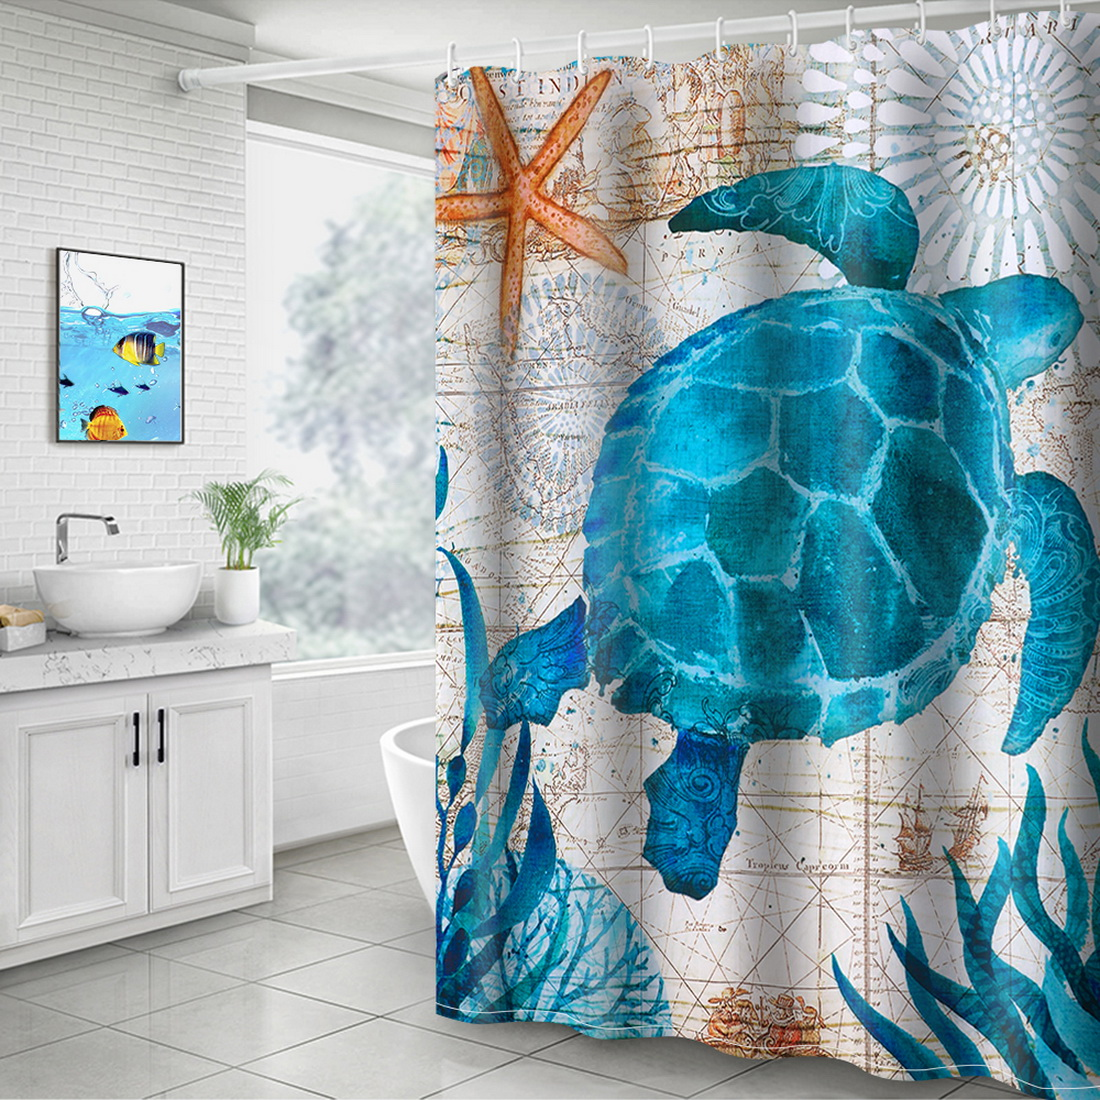 Us 4 55 45 Off Sea Turtle Print Waterproof Shower Curtain Polyester Fabric Bath Curtain Octopus Washable Home Bath Decor Curtains With 12 Hooks In